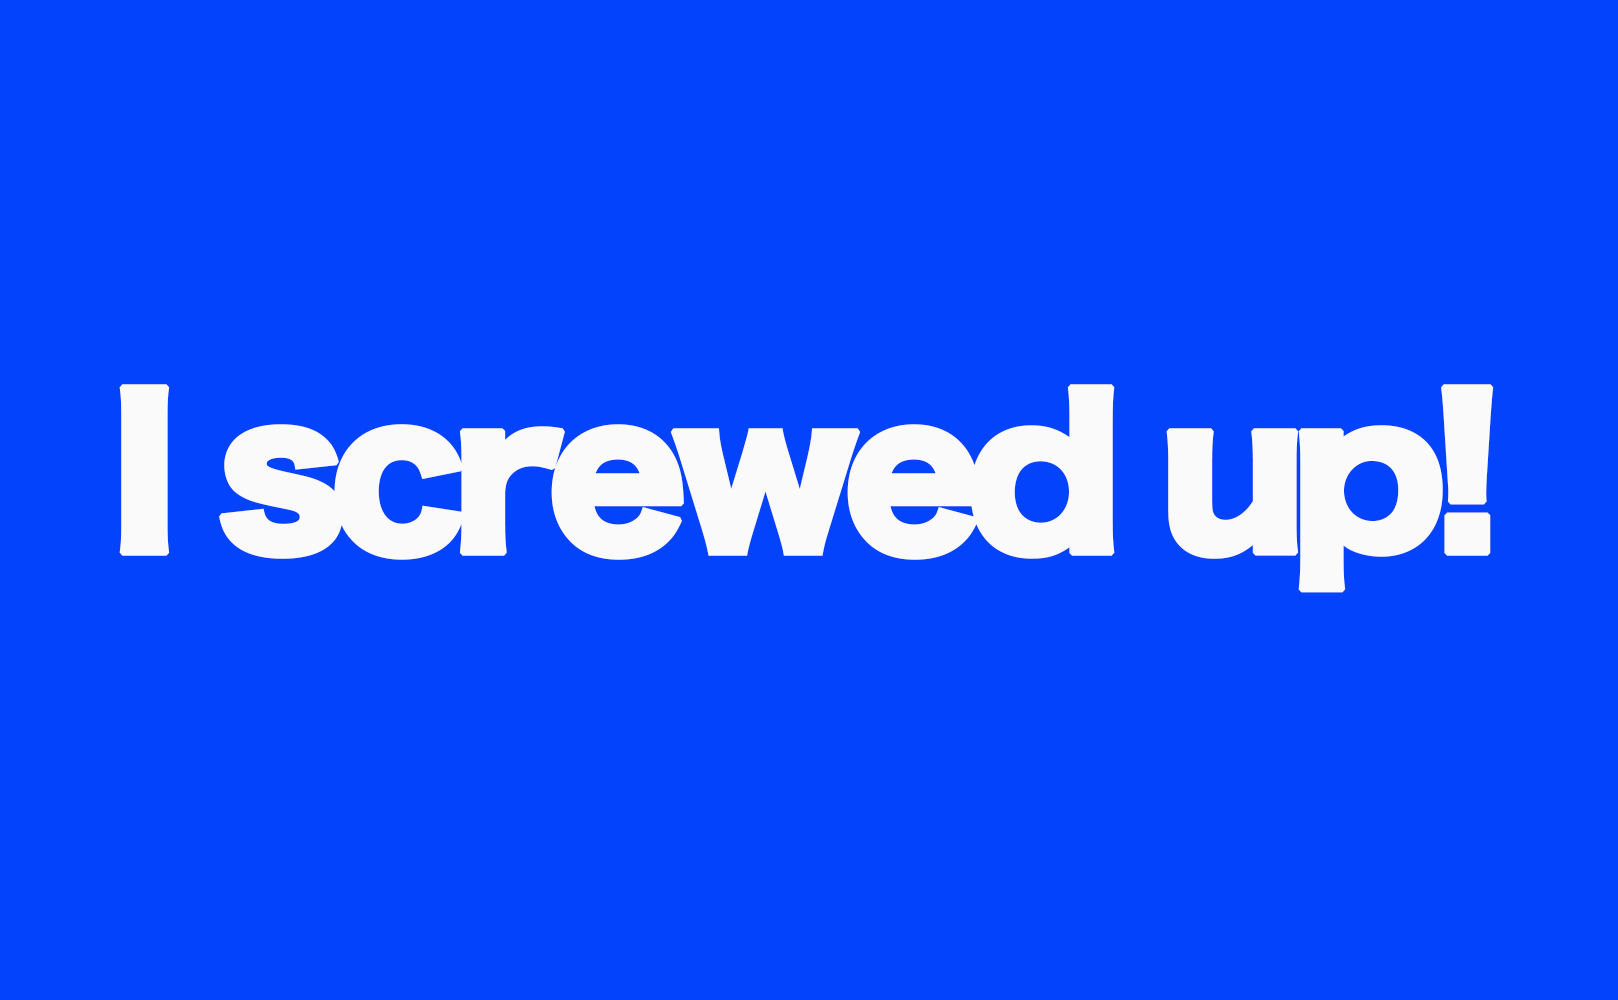 screw up